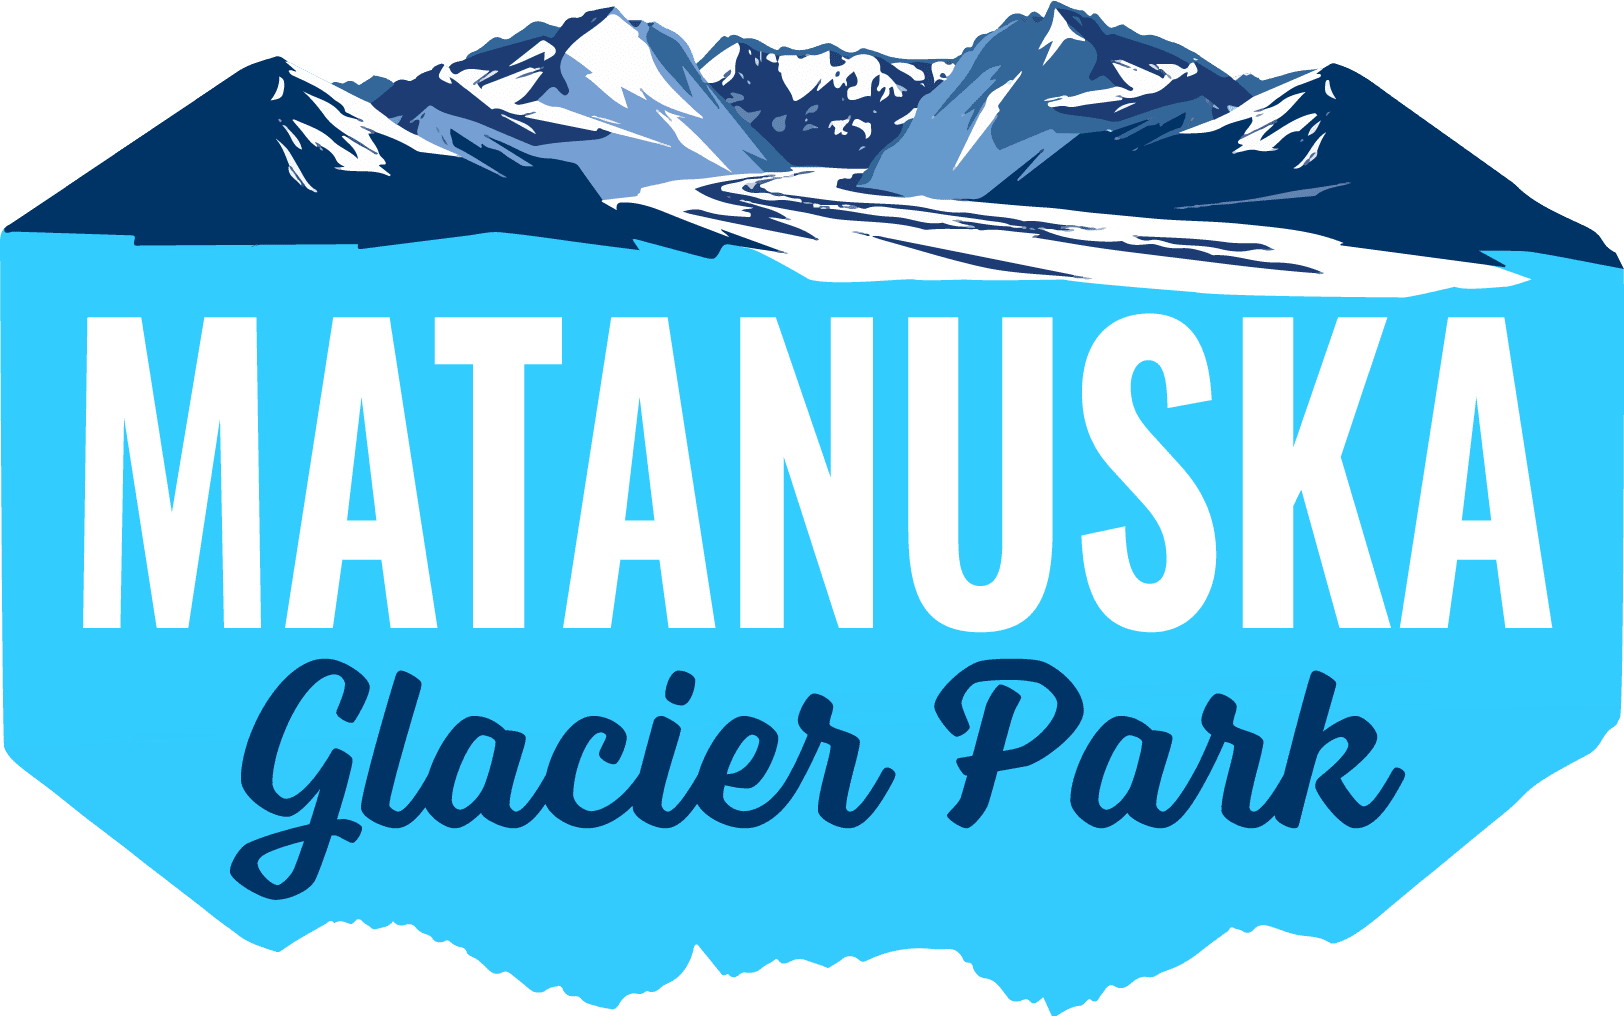 Experience Alaska's Matanuska Glacier with self-guided access or a guided tour with gear and visits to ice caves and other glacier features.